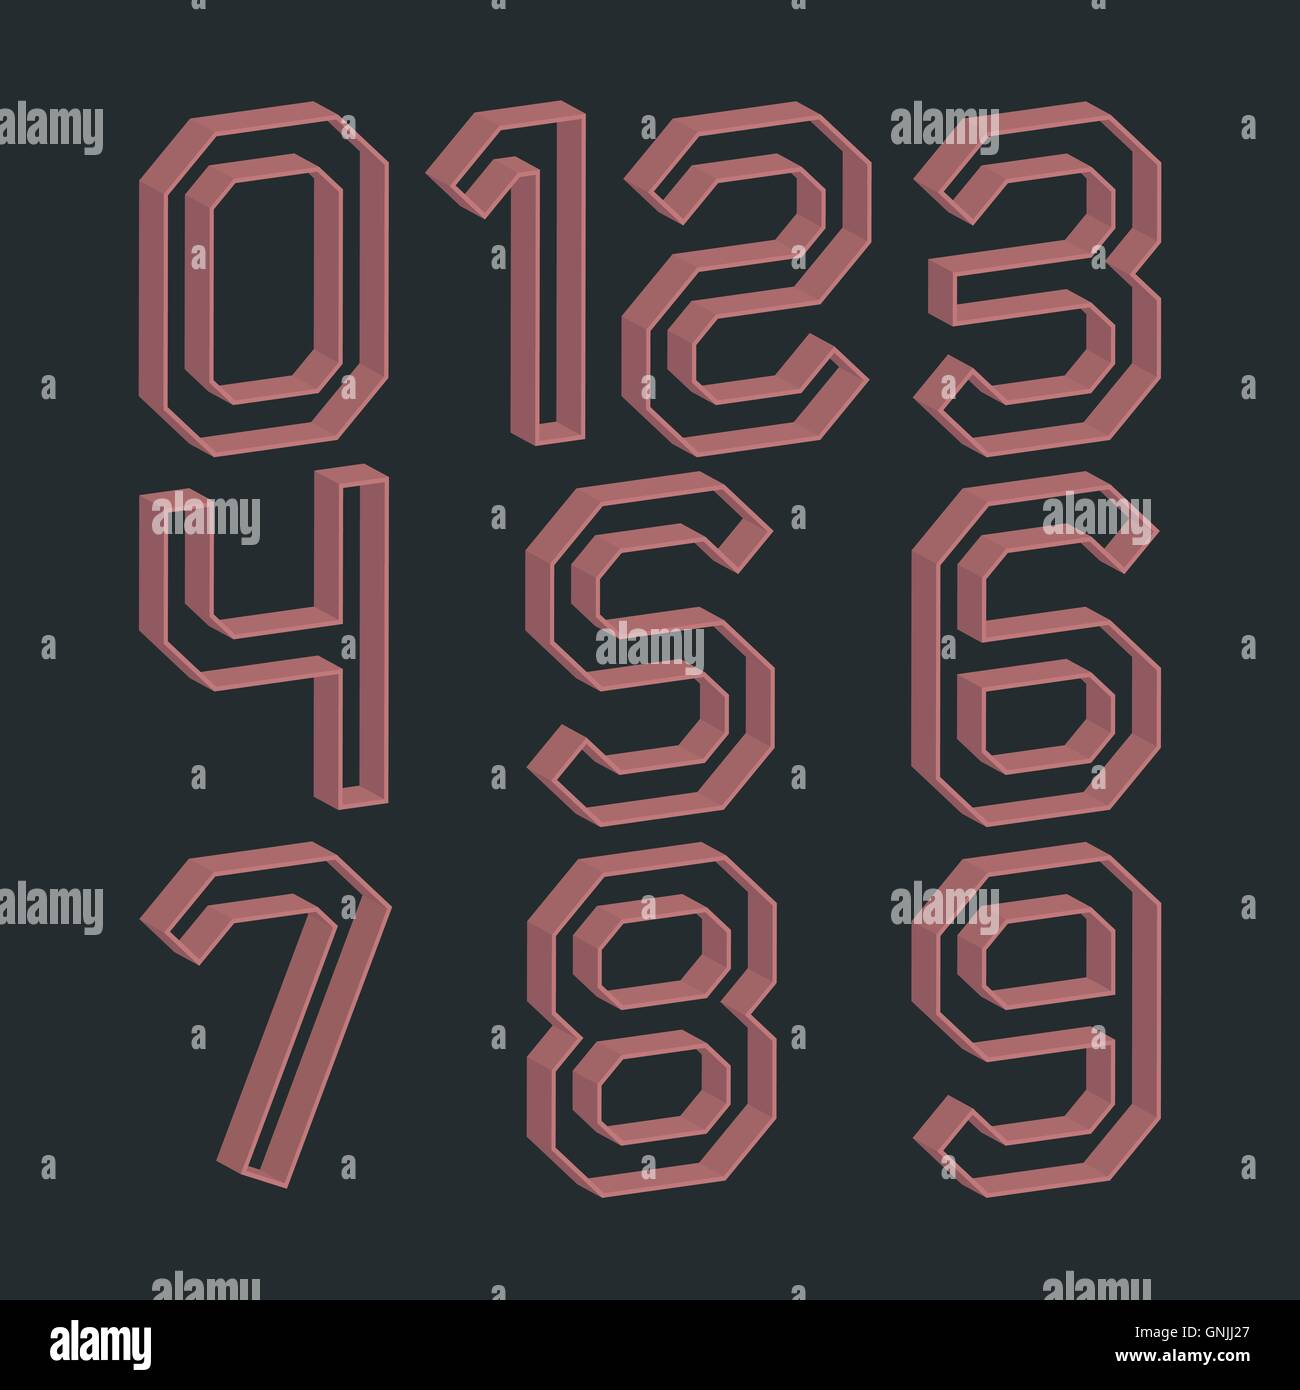 A set of numbers, vector illustration. - Stock Image